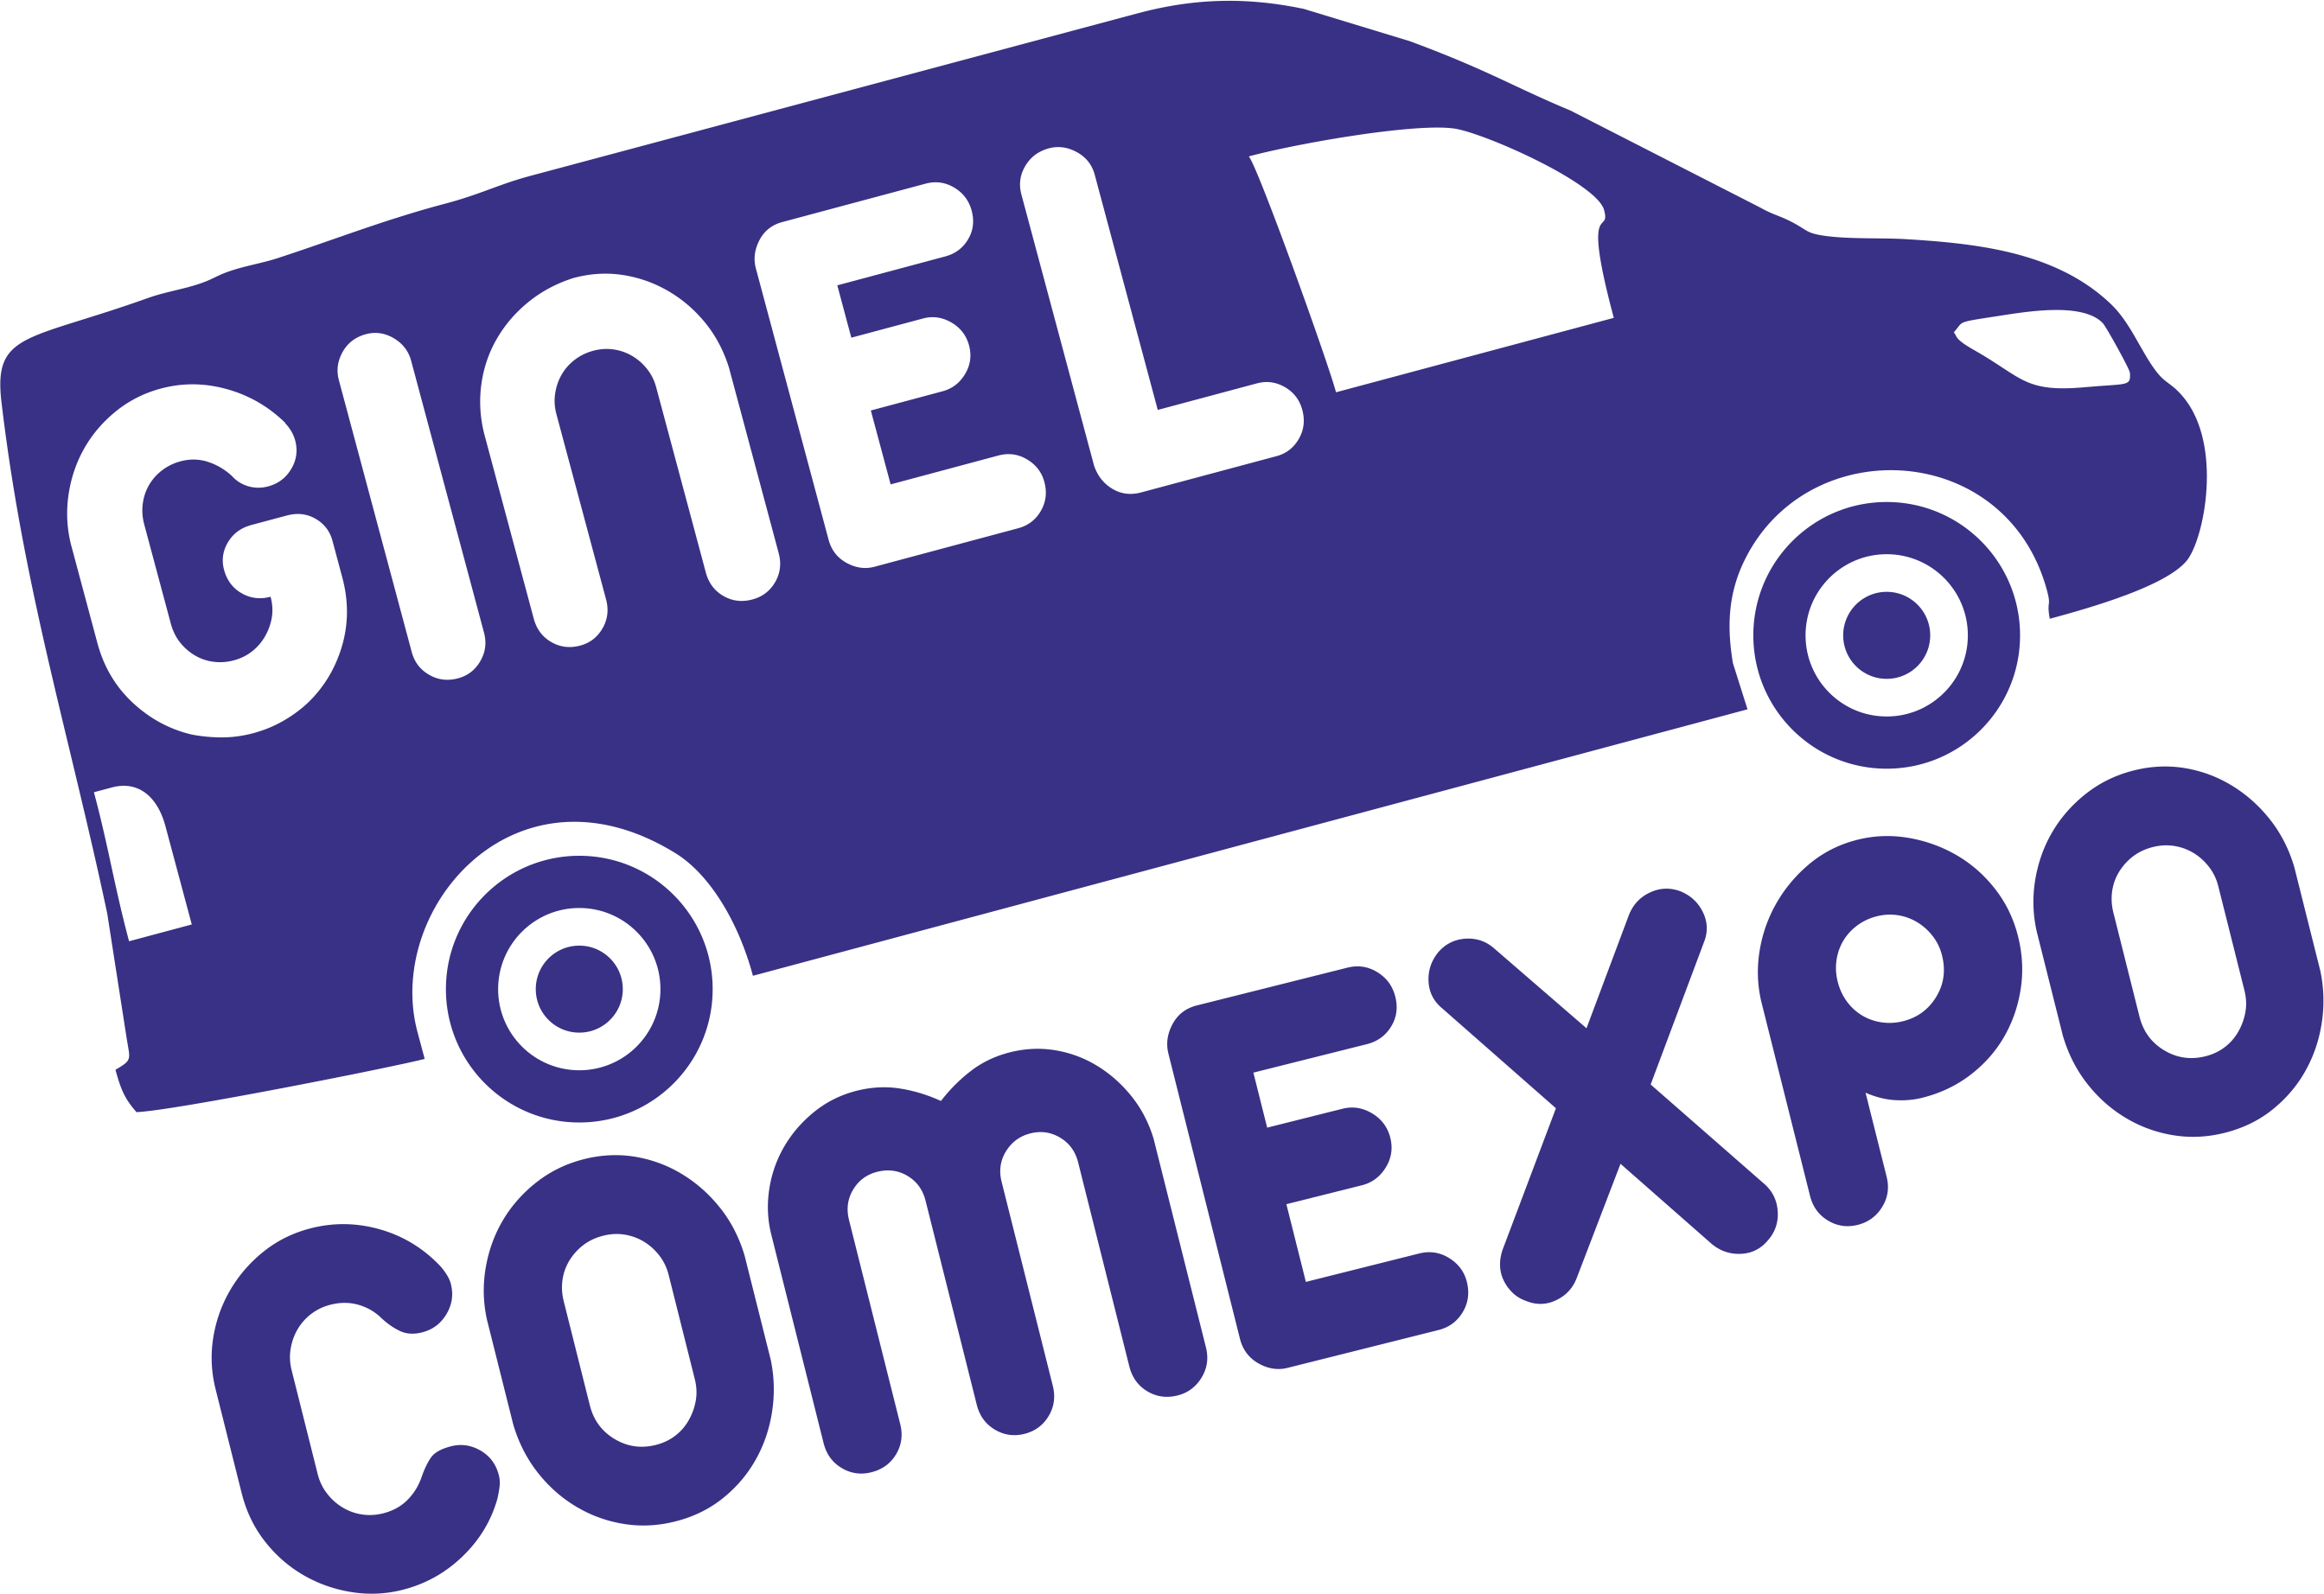 Ginel Comexpo